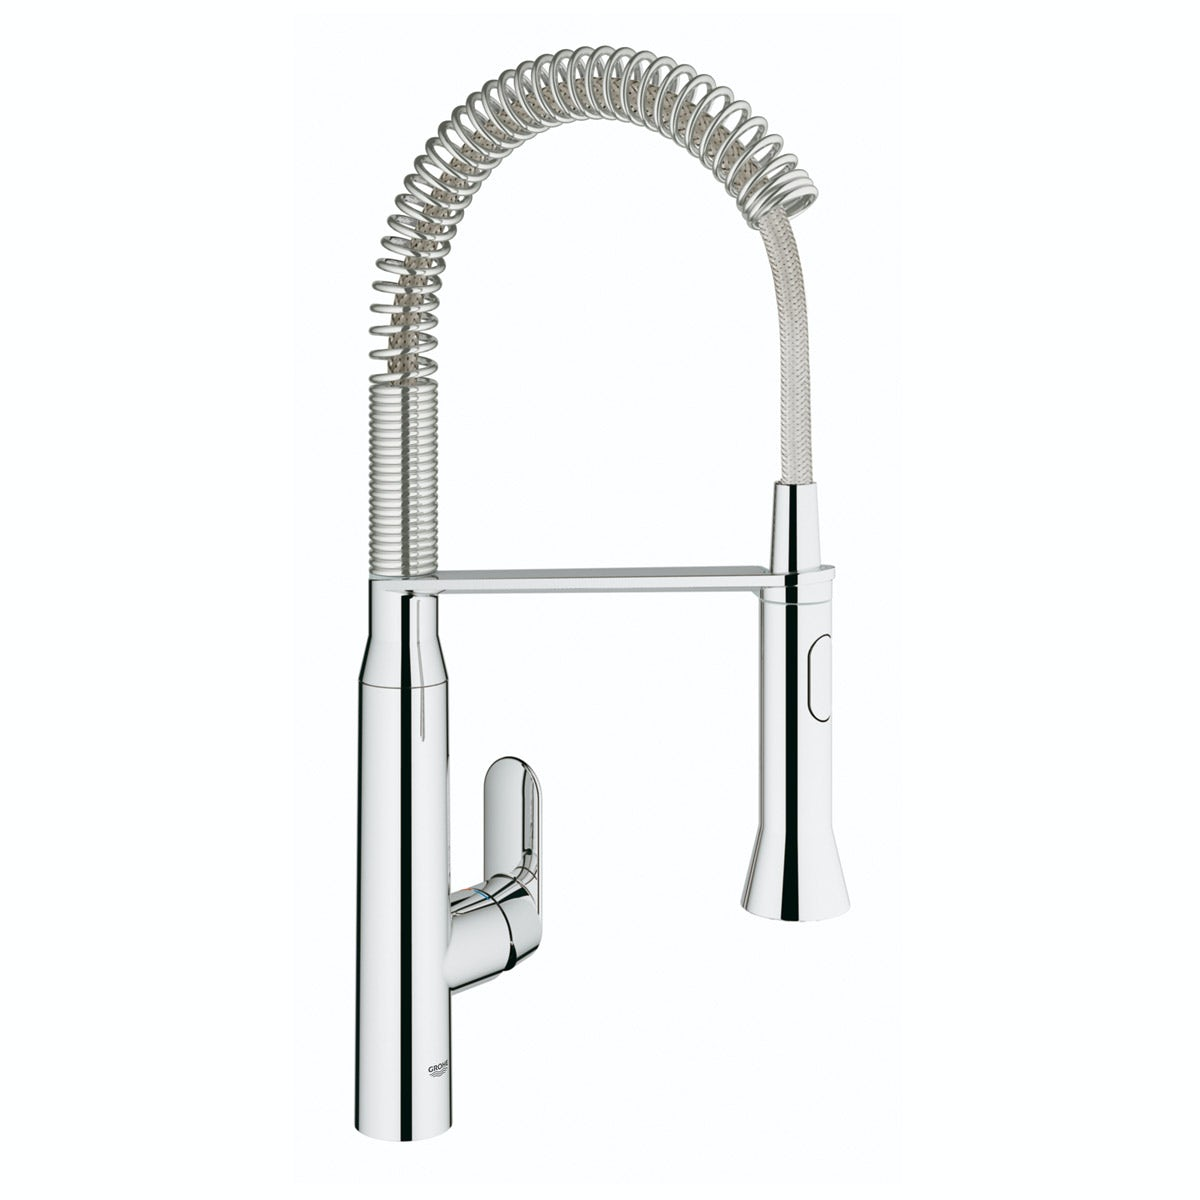 Grohe K7 Profi-spray medium kitchen tap with pull down spout